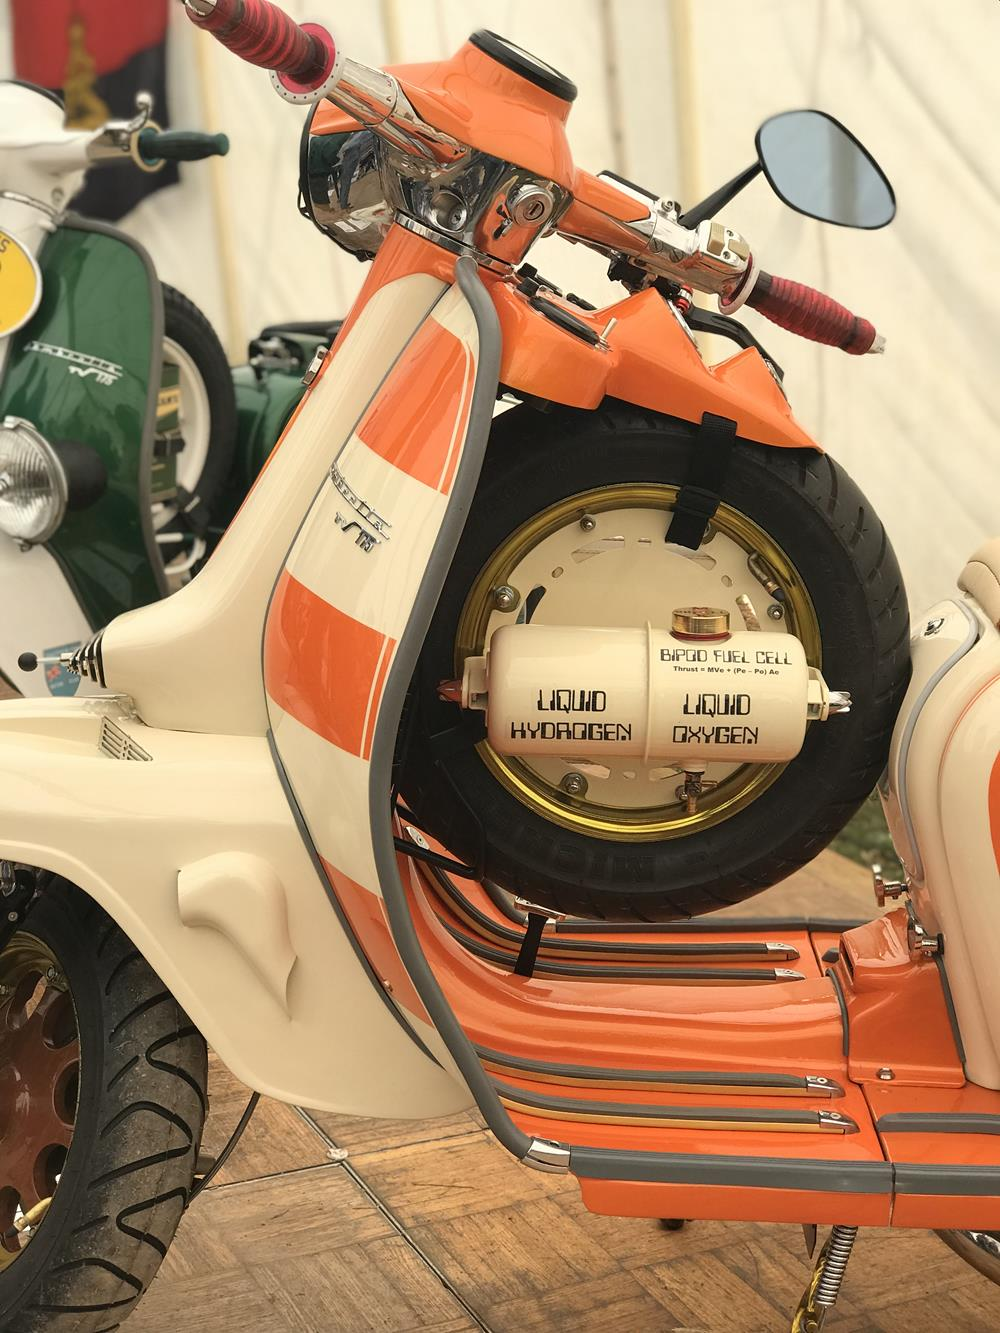 Orange and cream Lambretta with spare wheel behind the legshields and liquid hydrogen cannister